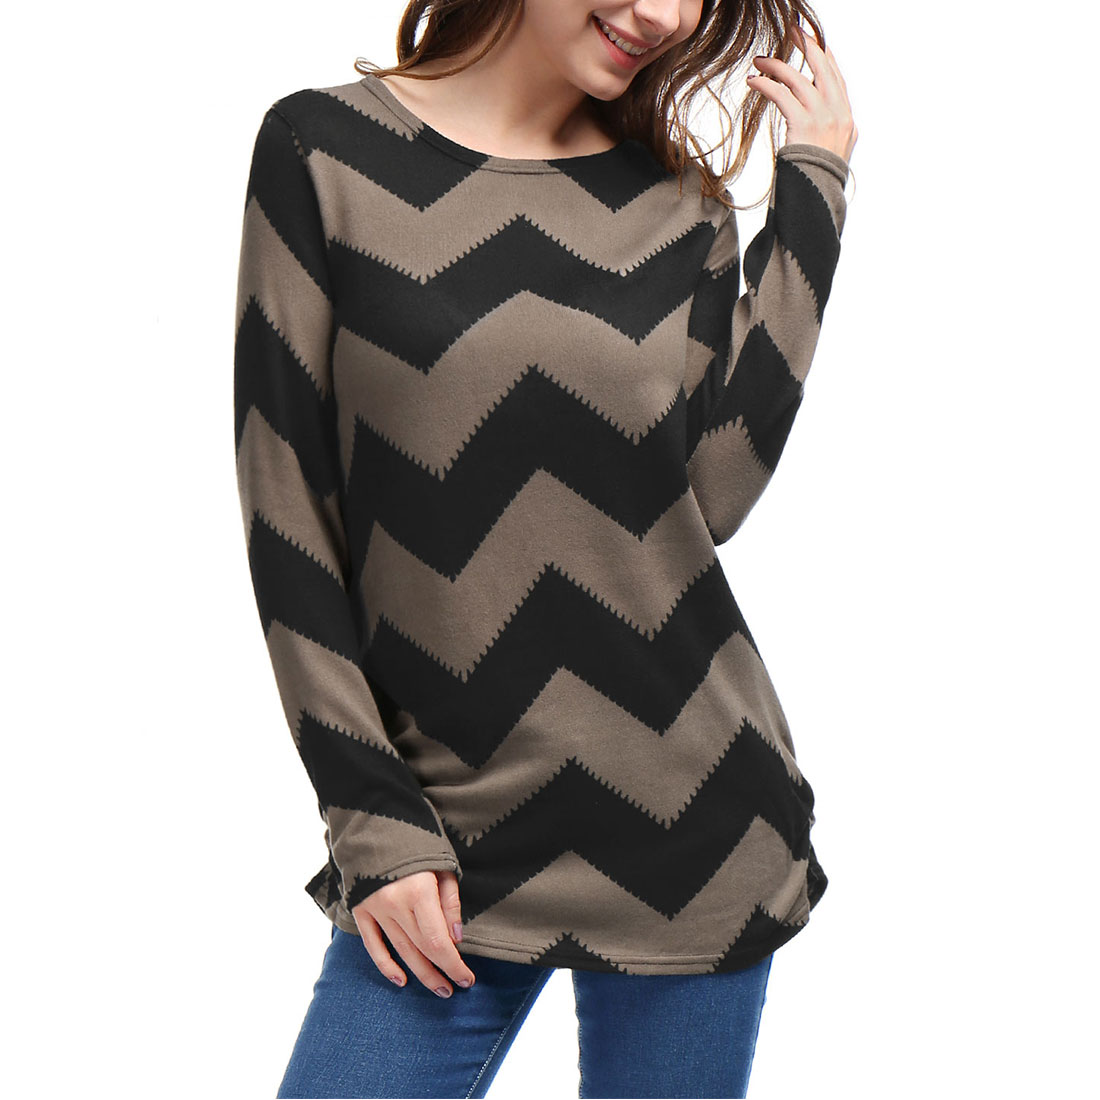 Unique Bargains Women's Zig-Zag Pattern Knitted Loose Tun...